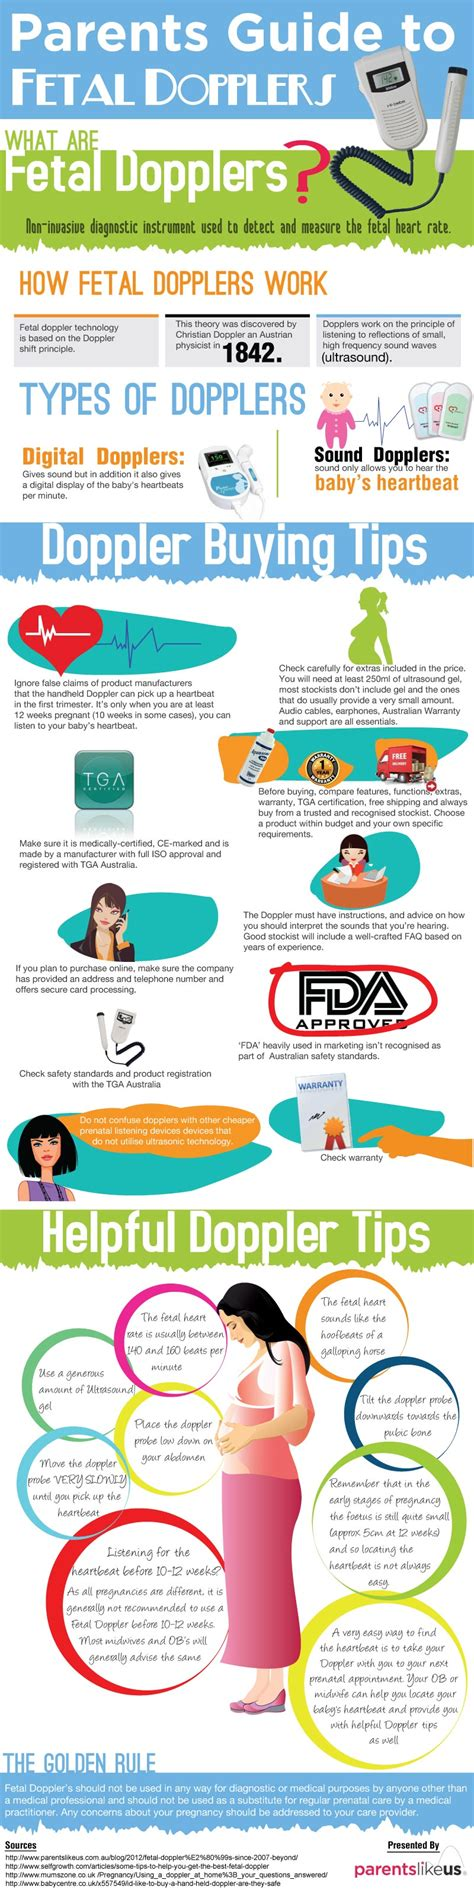 s day parents guide parents guide to fetal dopplers infographic parents